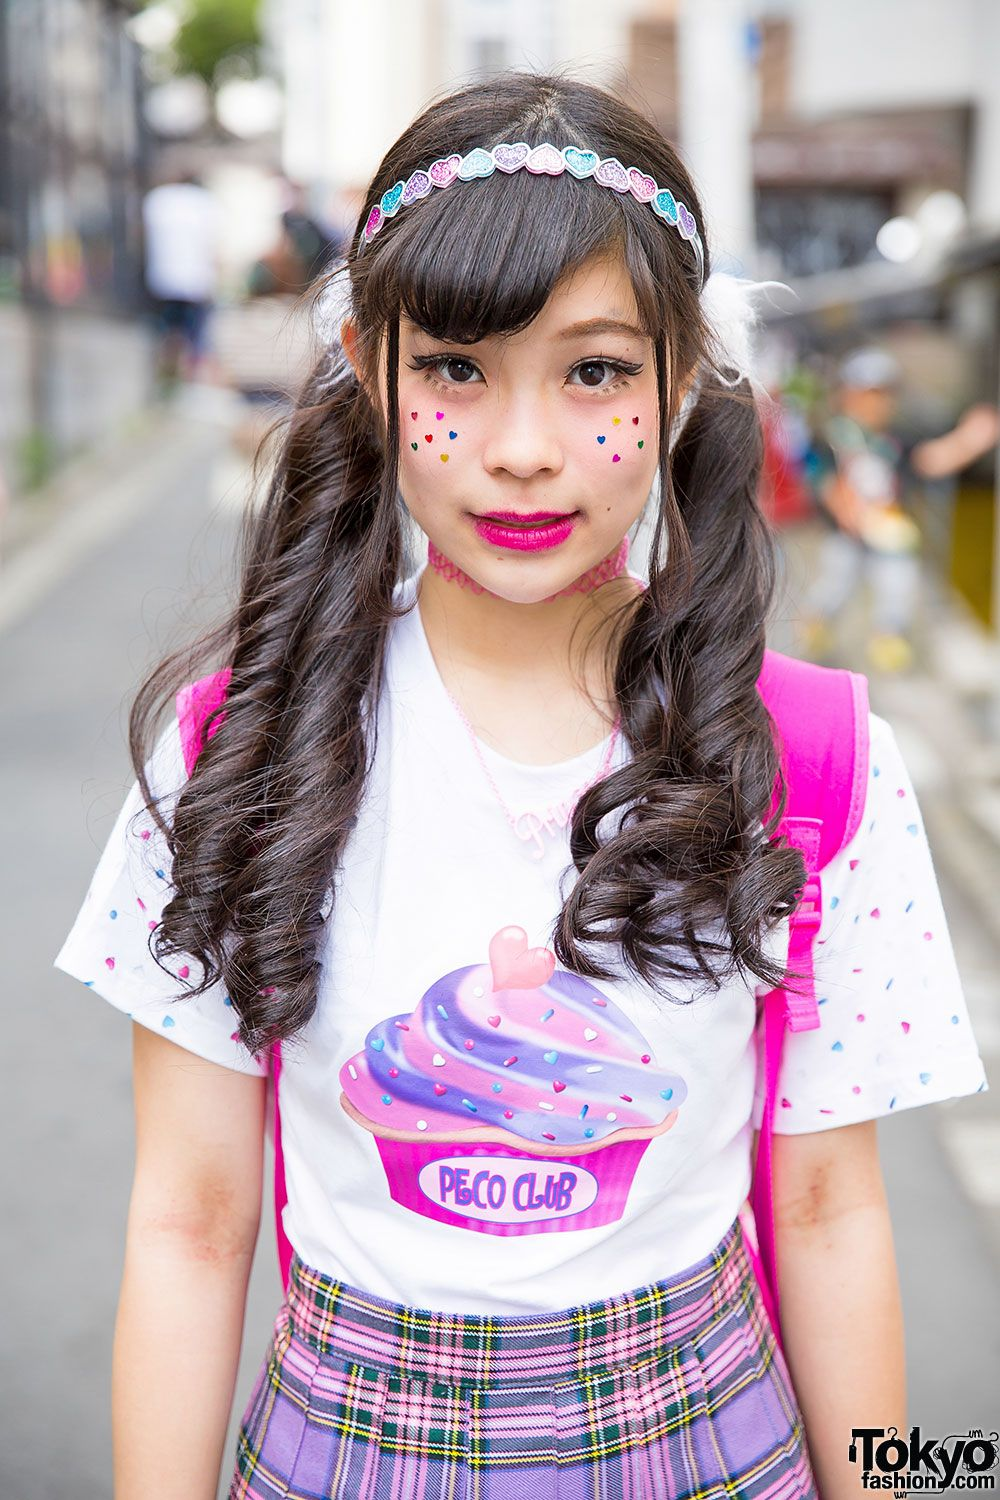 d4d3d4786 Twin Tails & Facial Stickers Tokyo Fashion, Japanese Street Fashion,  Harajuku Fashion, Kawaii